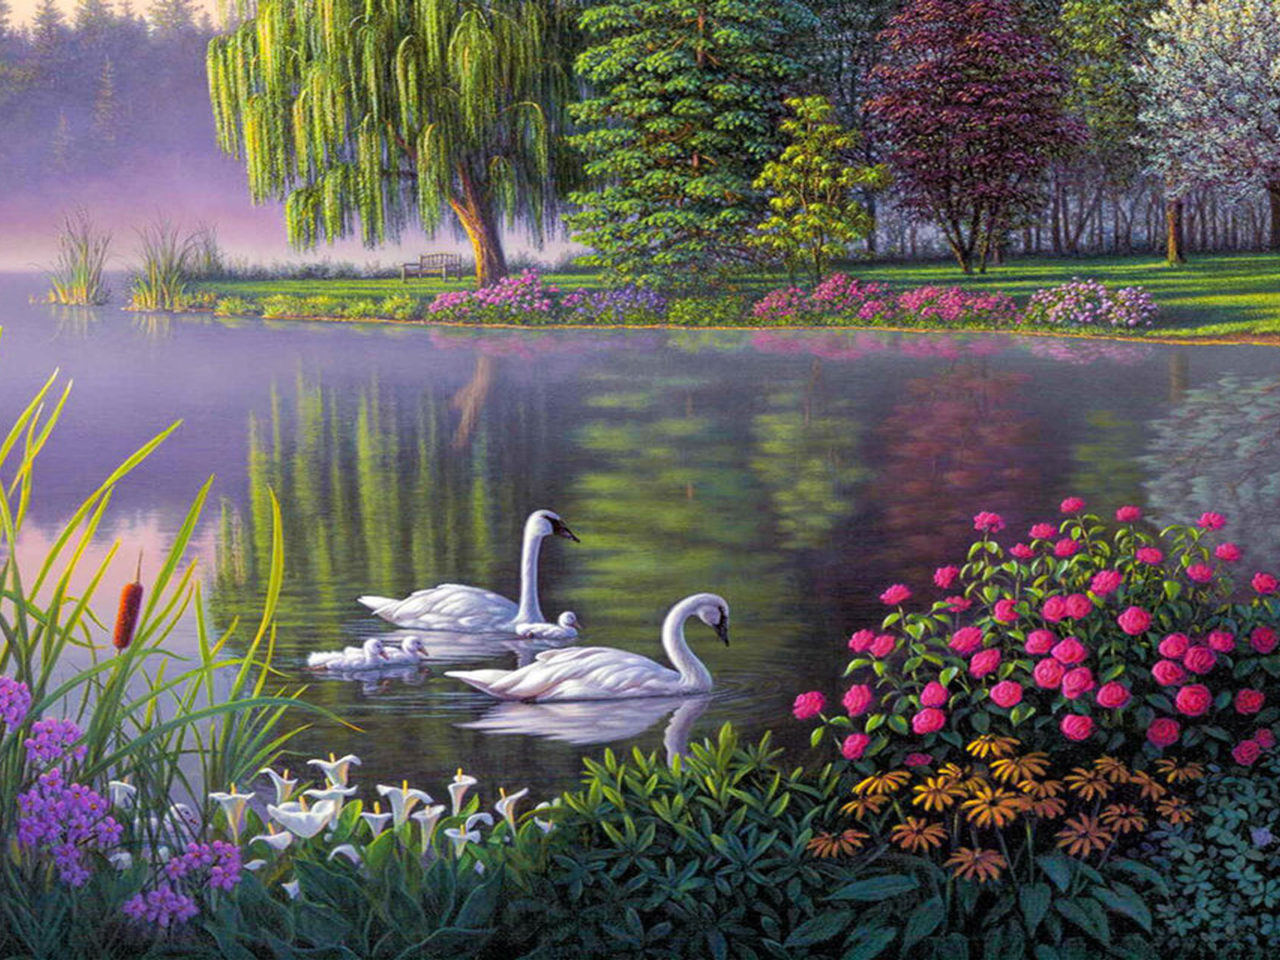 Christmas Wallpaper Iphone 5 Landscape Swan Lake Trees Flowers Art Wallpaper Hd